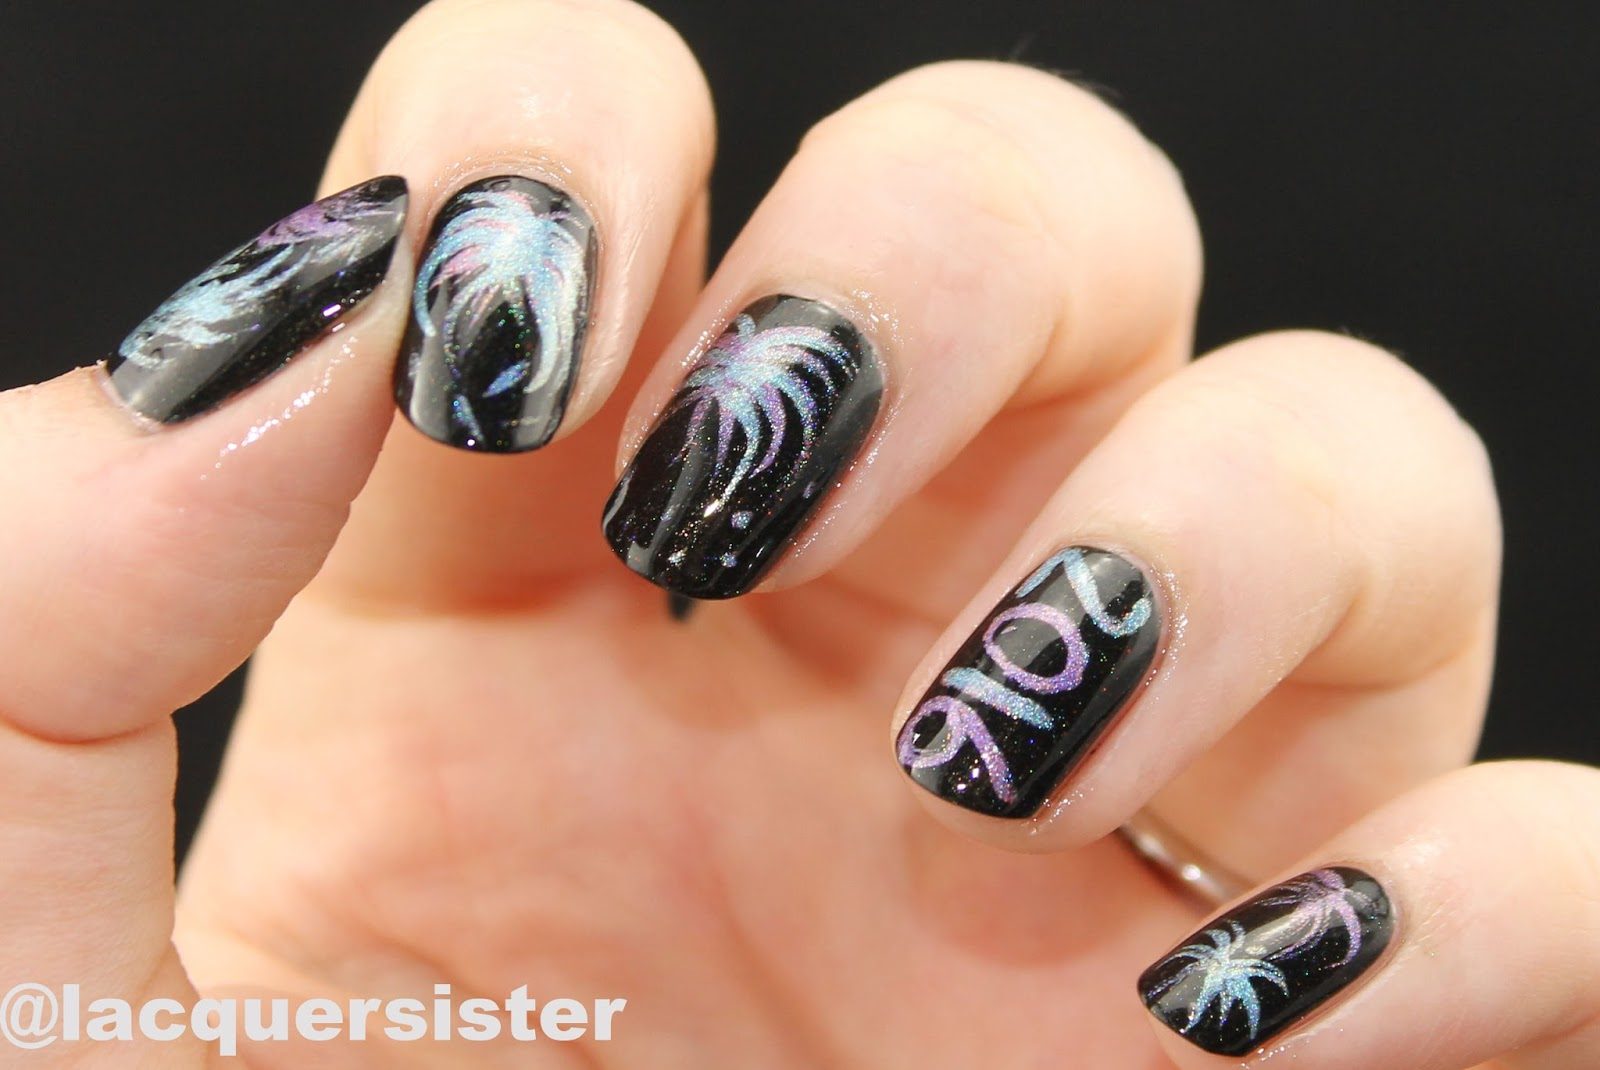 Lacquer Sister: 2015